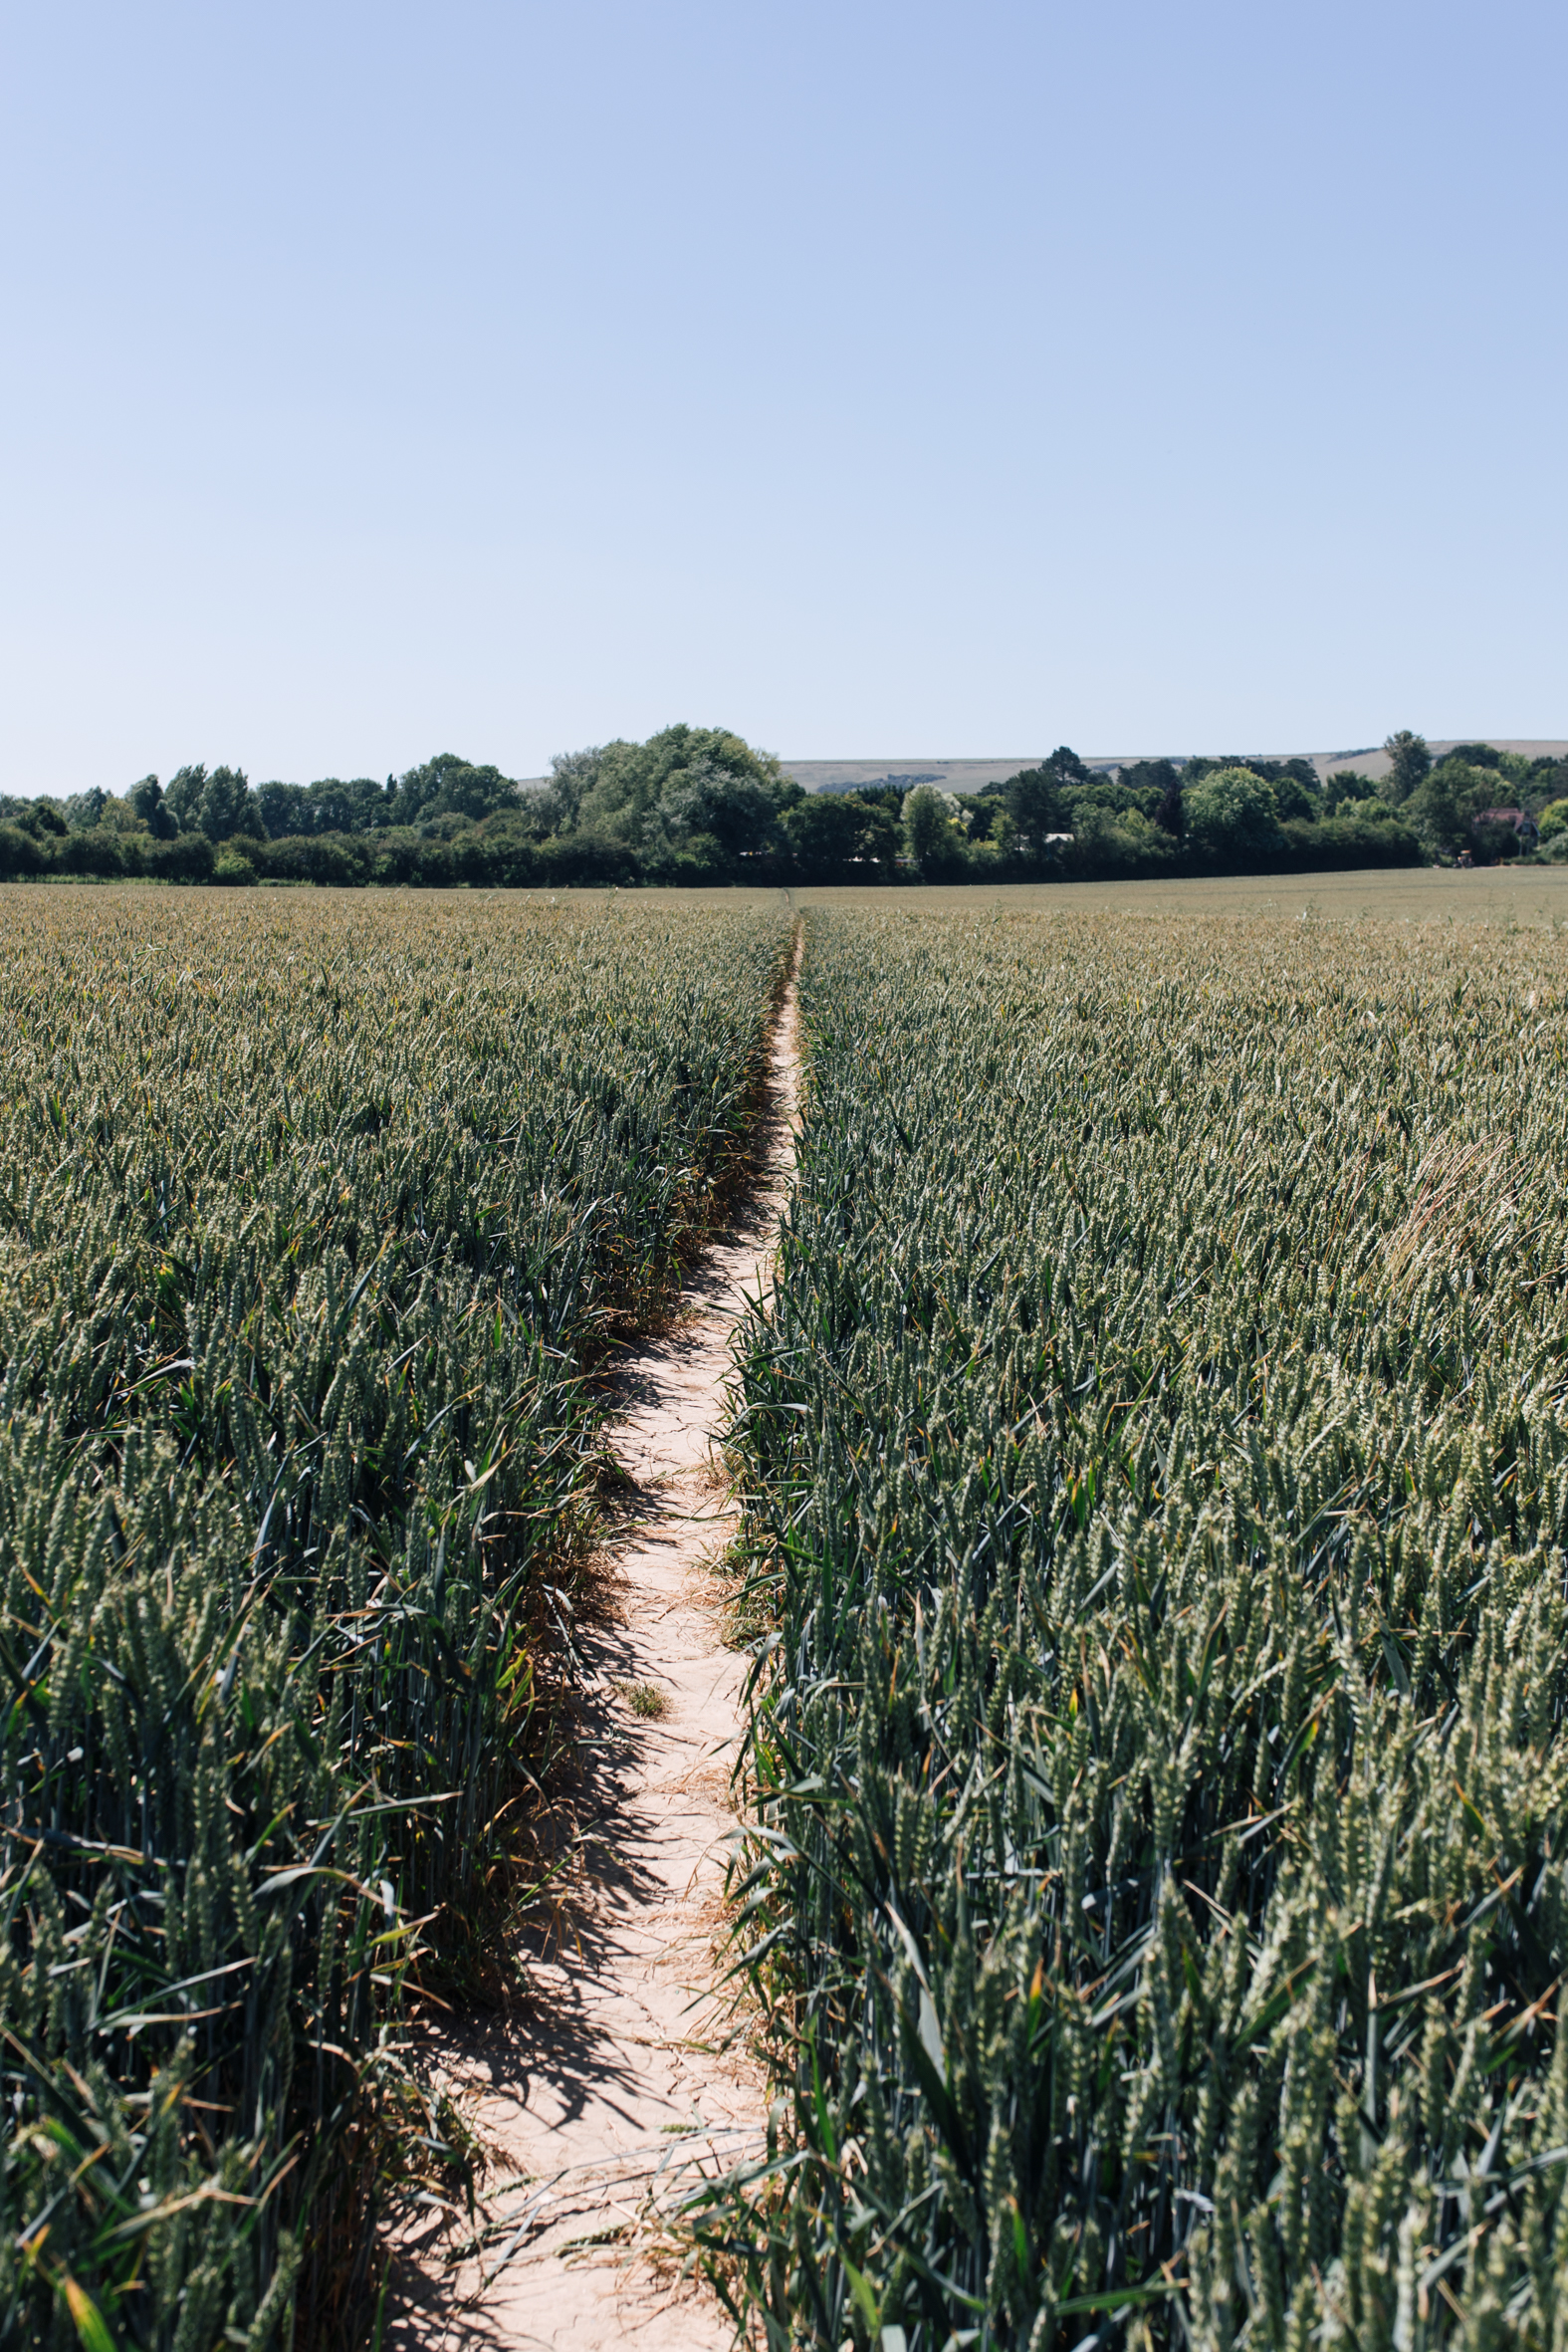 Down bridal paths through wheat fields